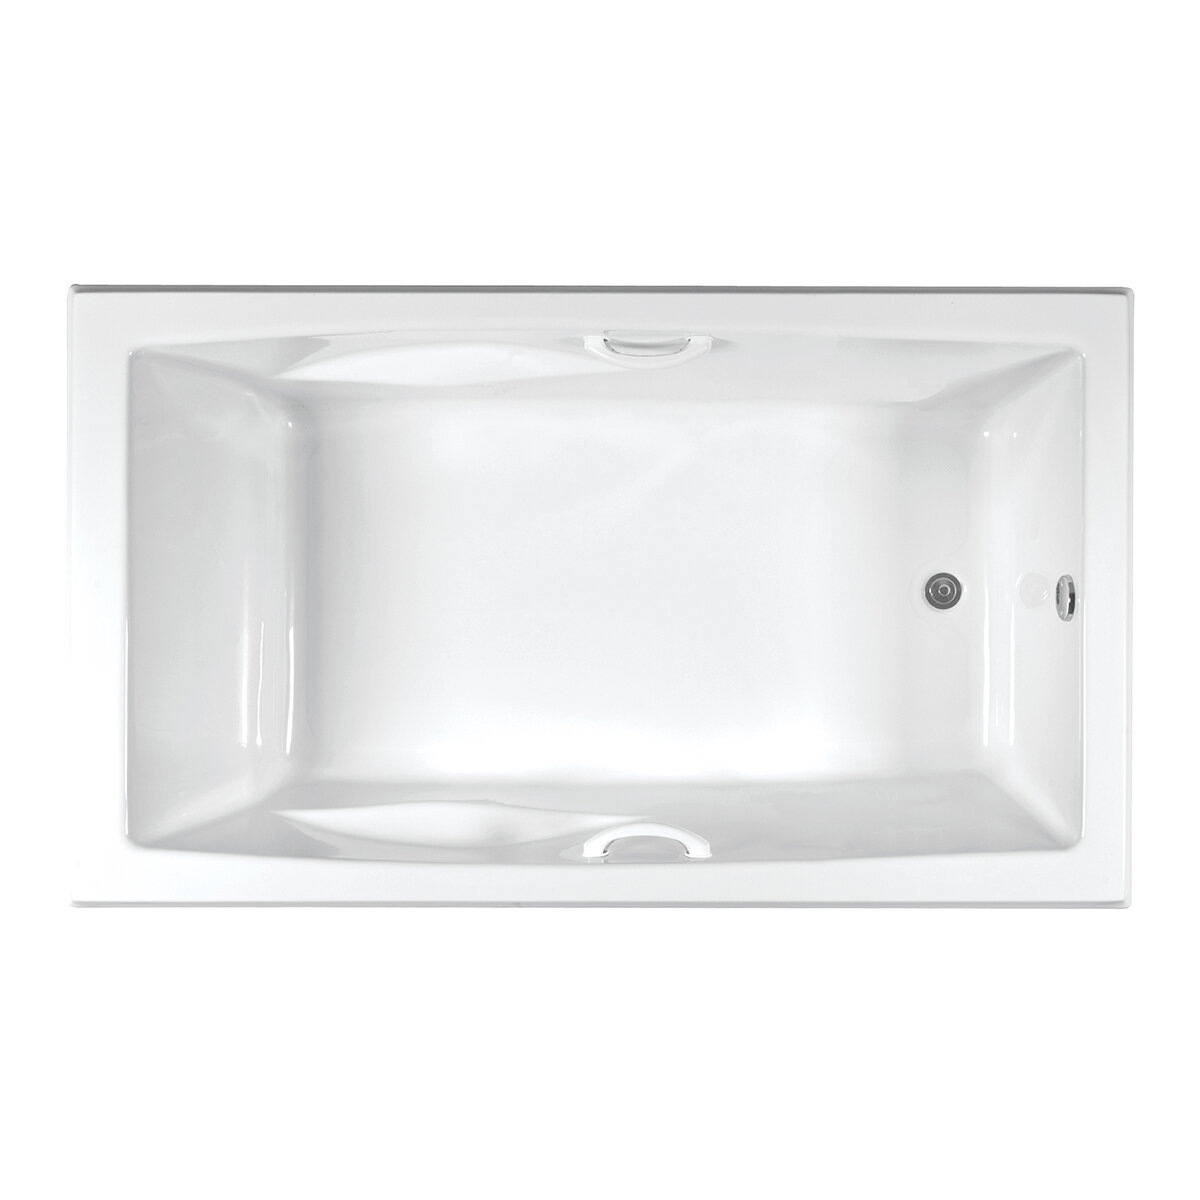 Brentwood 3672 Rectangle Swirl-Way Tub